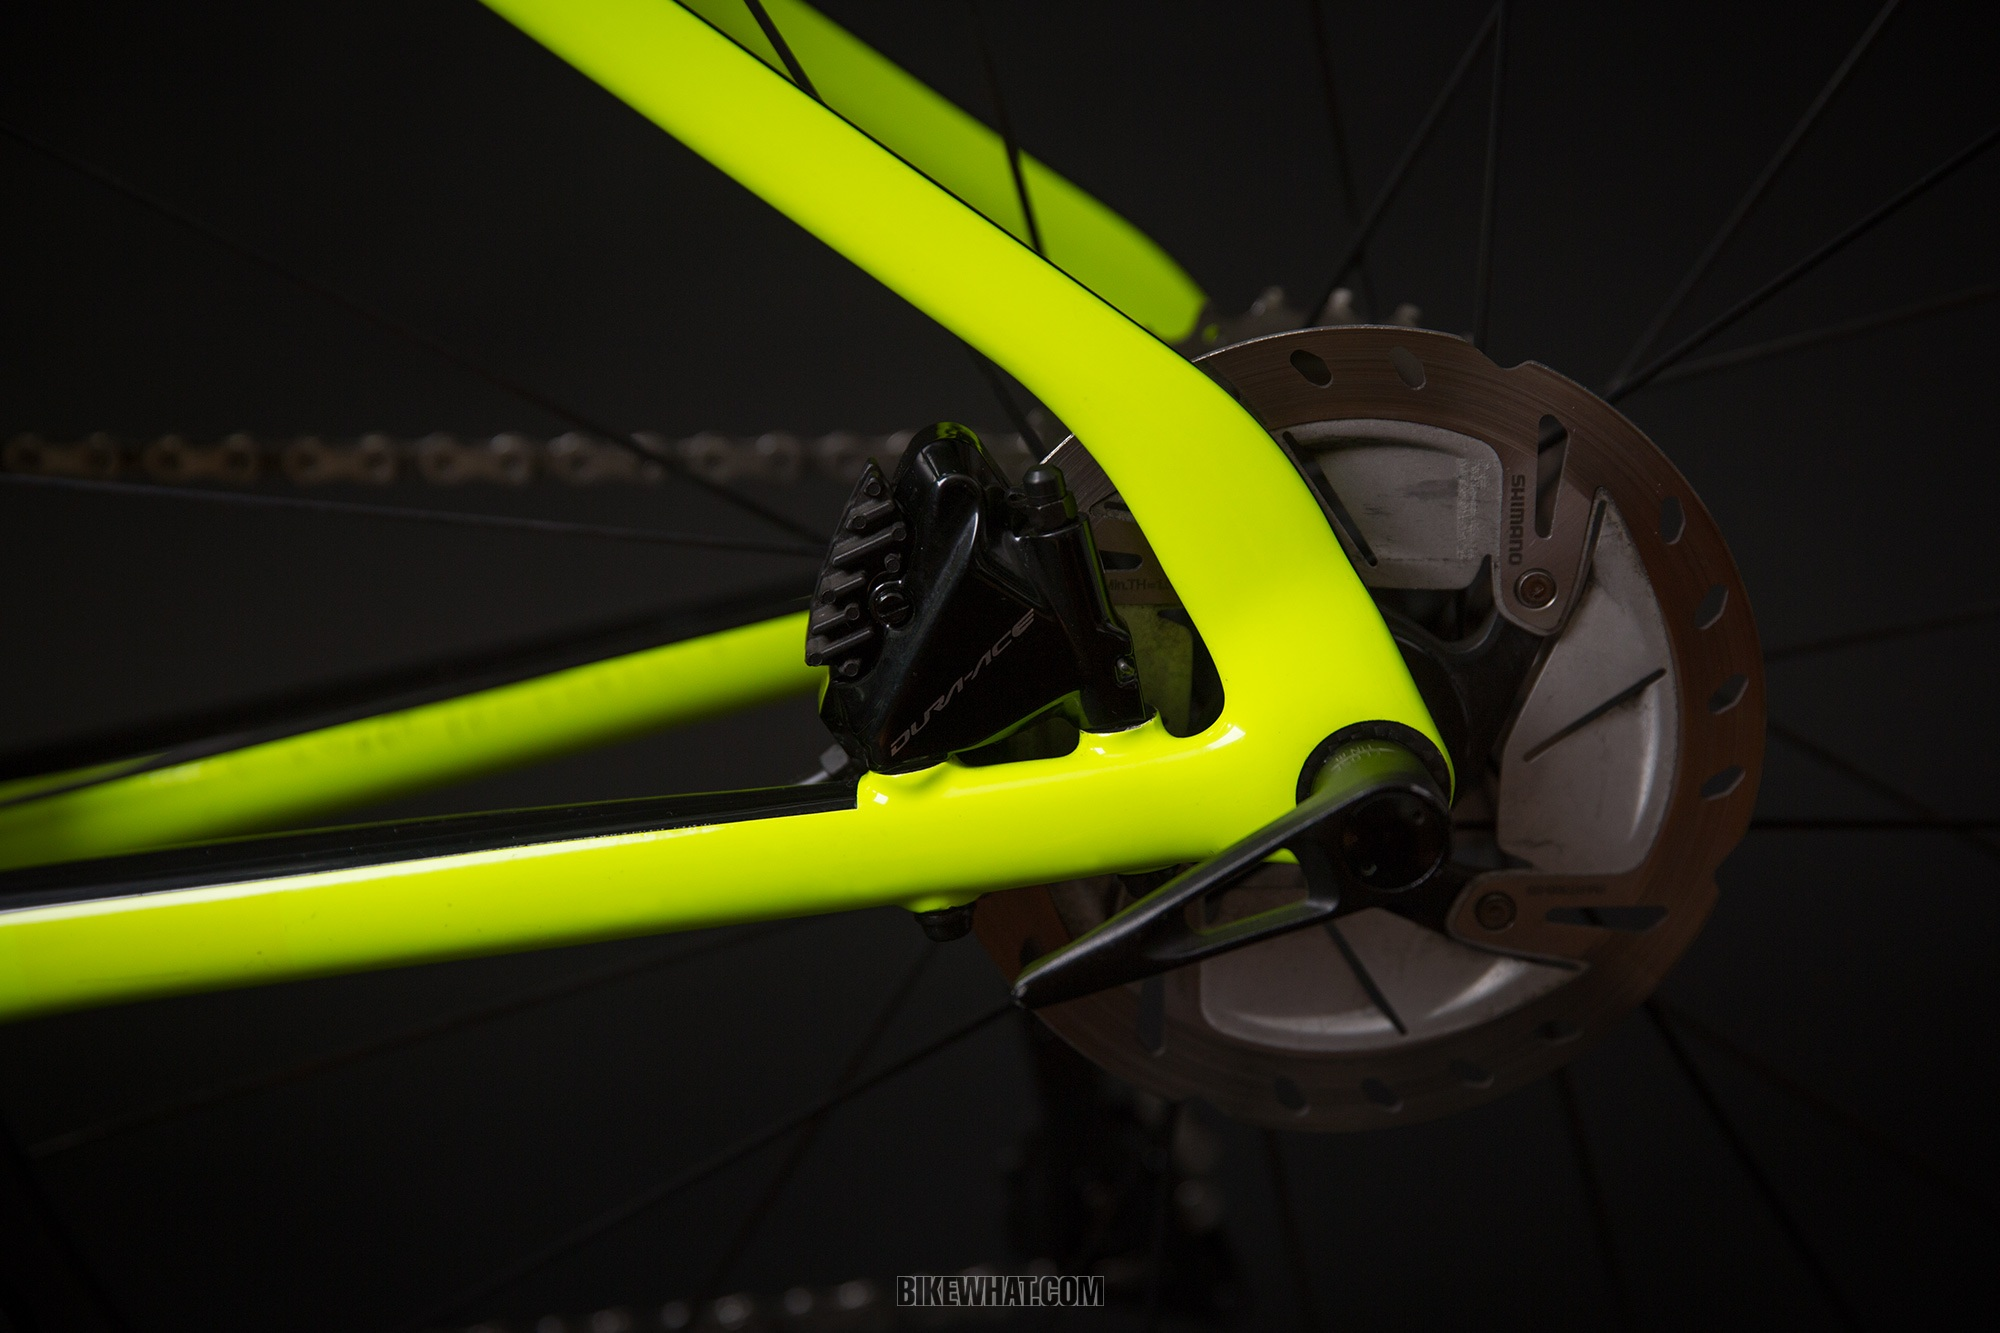 testride_cannondale_systemsix_05.jpg